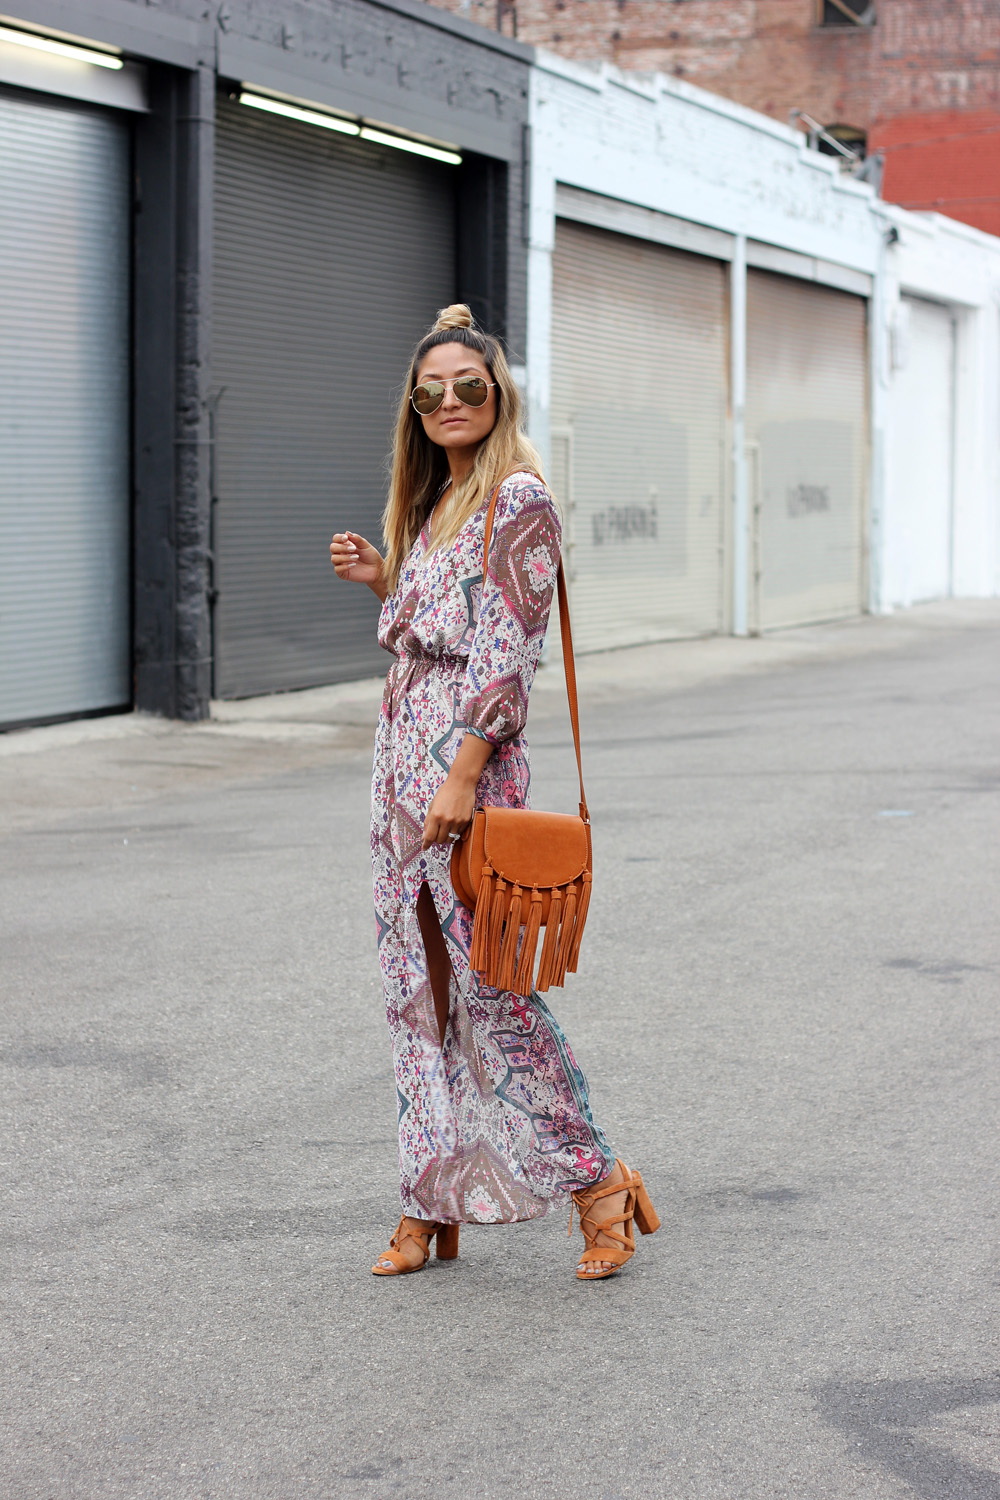 top knot, fringe, boho maxi dress, ootd, melrodstyle, la blogger, personal blog, latina blogger, hispanic blogger, mexican blogger, street style, la, inspiration